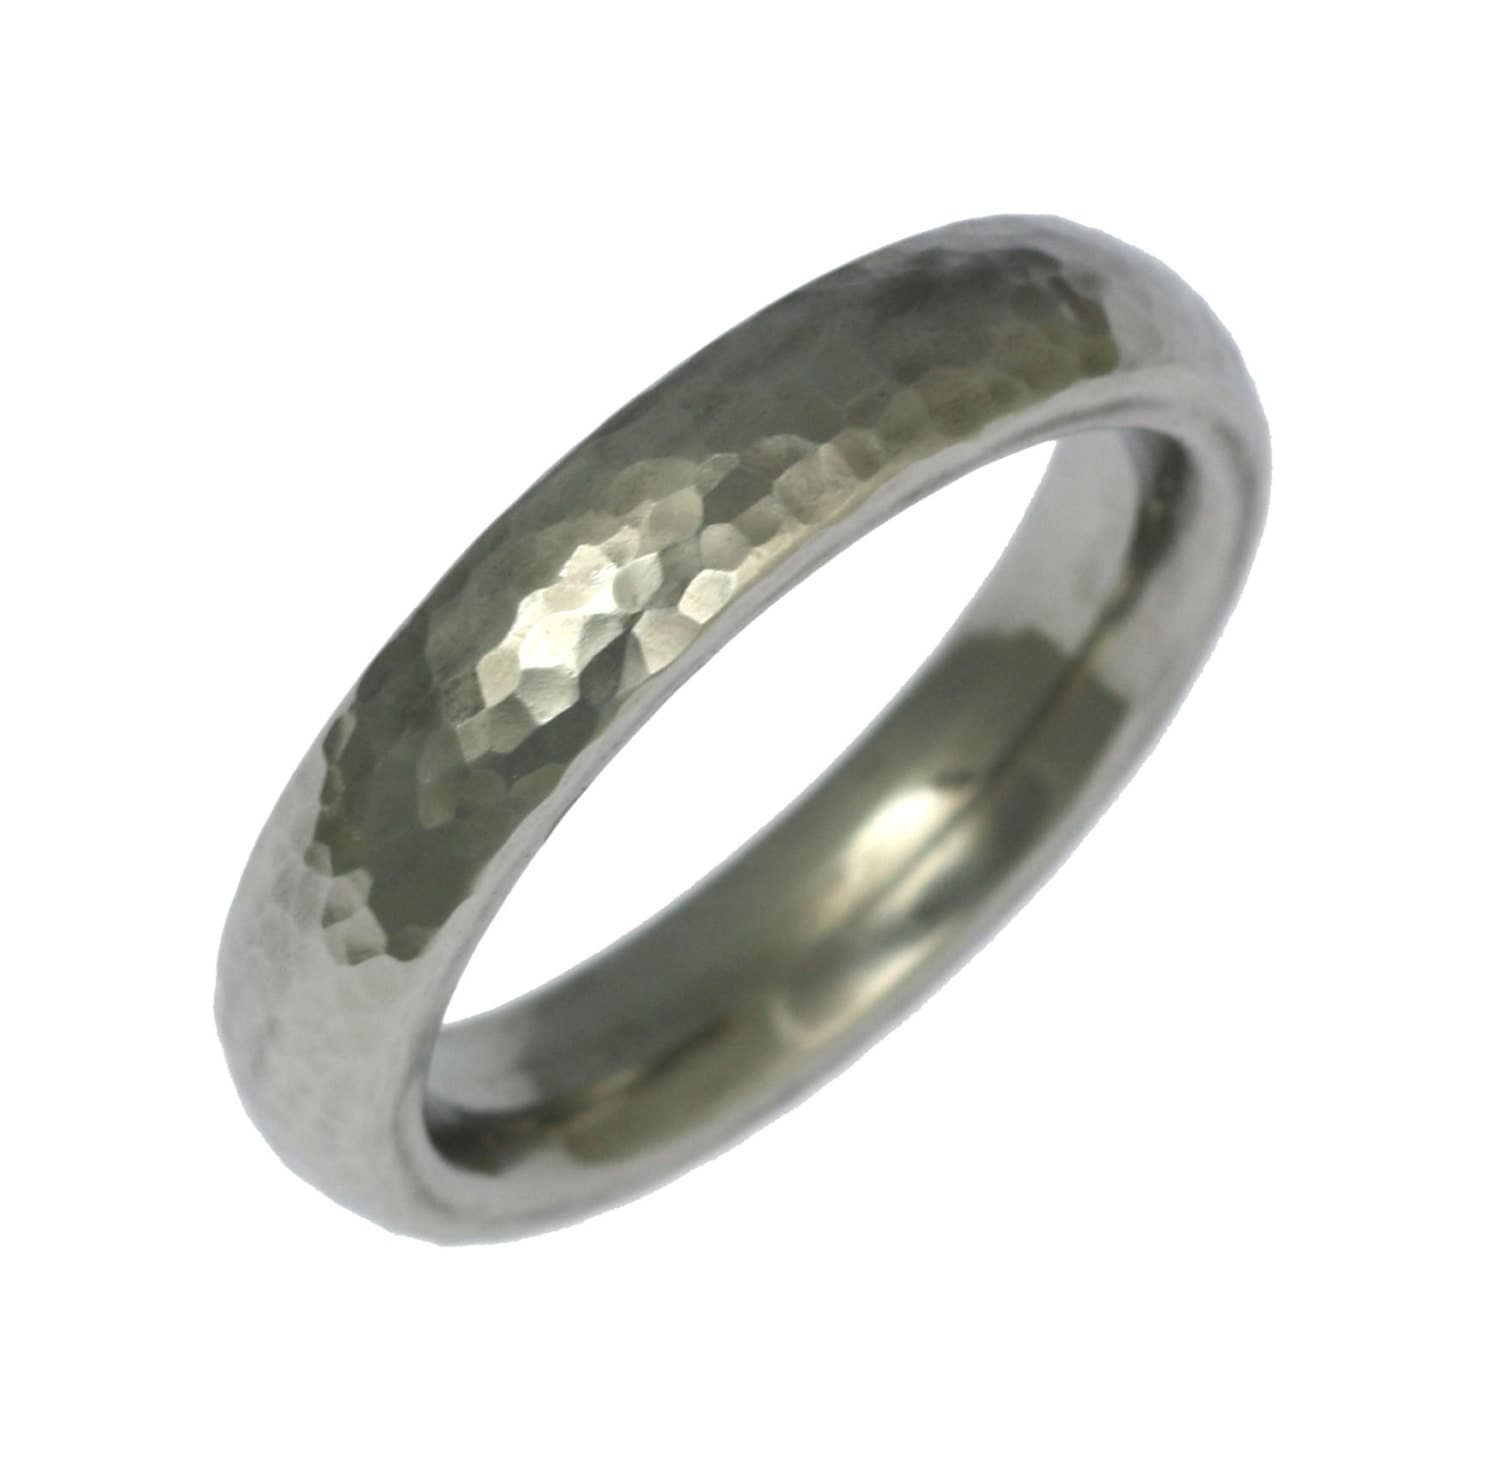 5mm hammered stainless steel mens ring mens hammered wedding